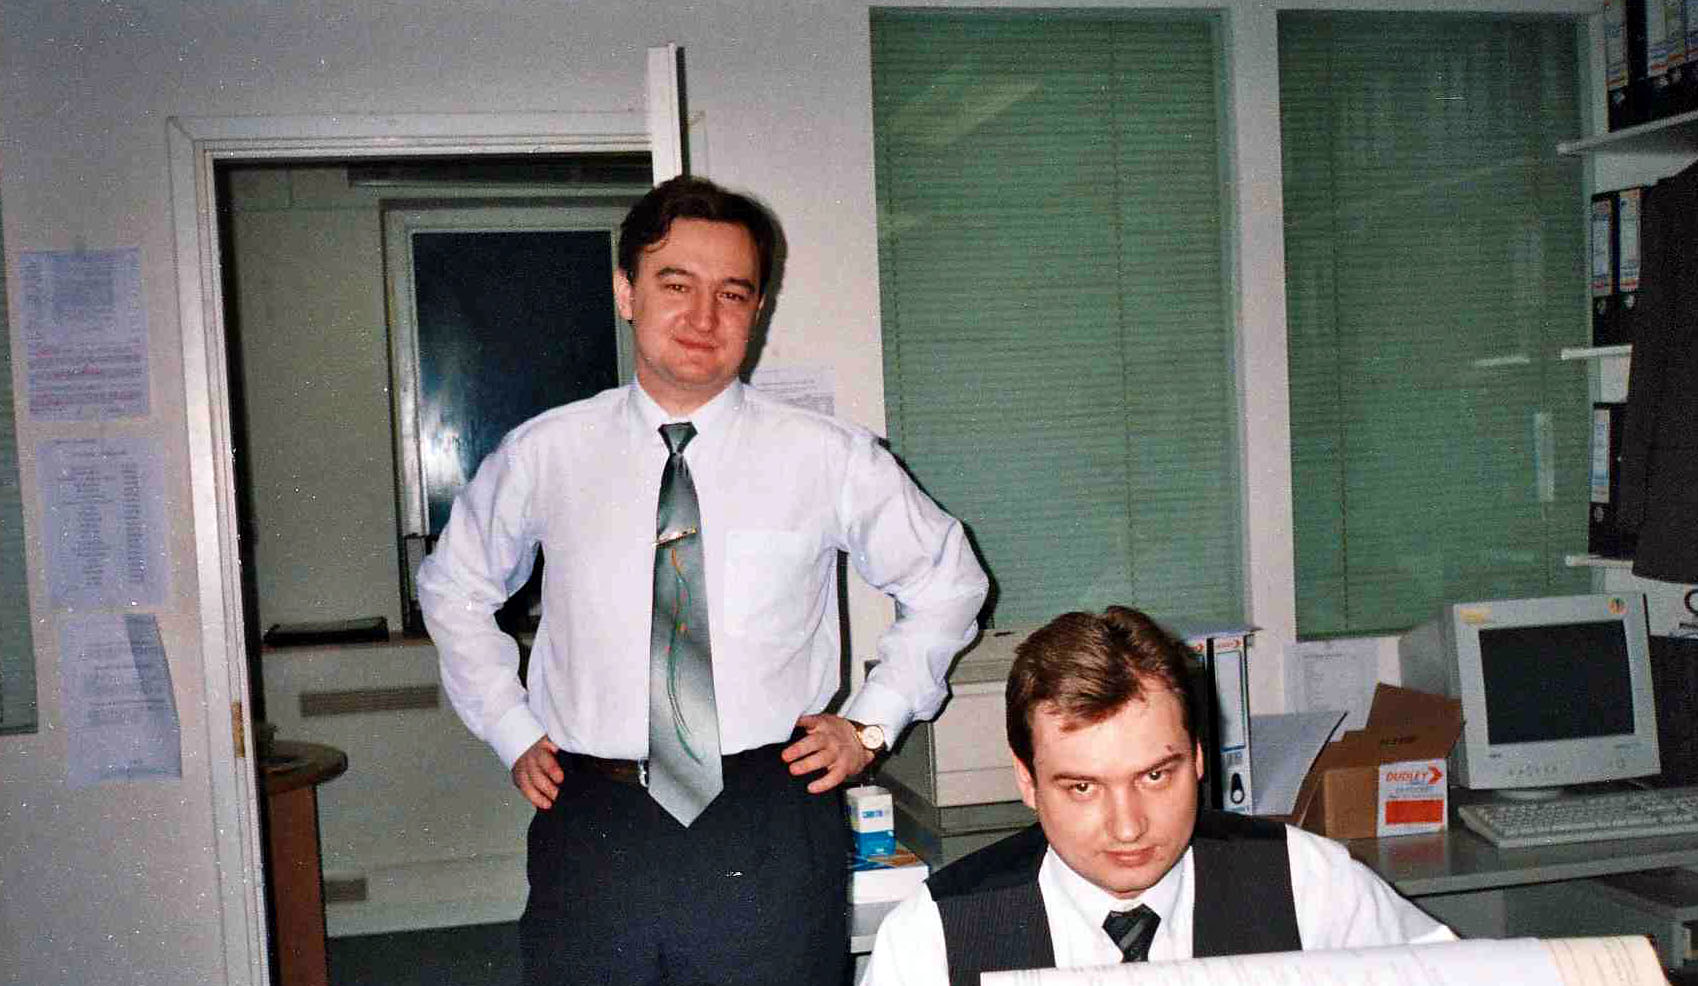 Lawyer Sergei Magnitsky, left, died in Russian pretrial detention in 2009. President-elect Donald Trump has signaled a less-strident U.S. posture on rights in Russia.